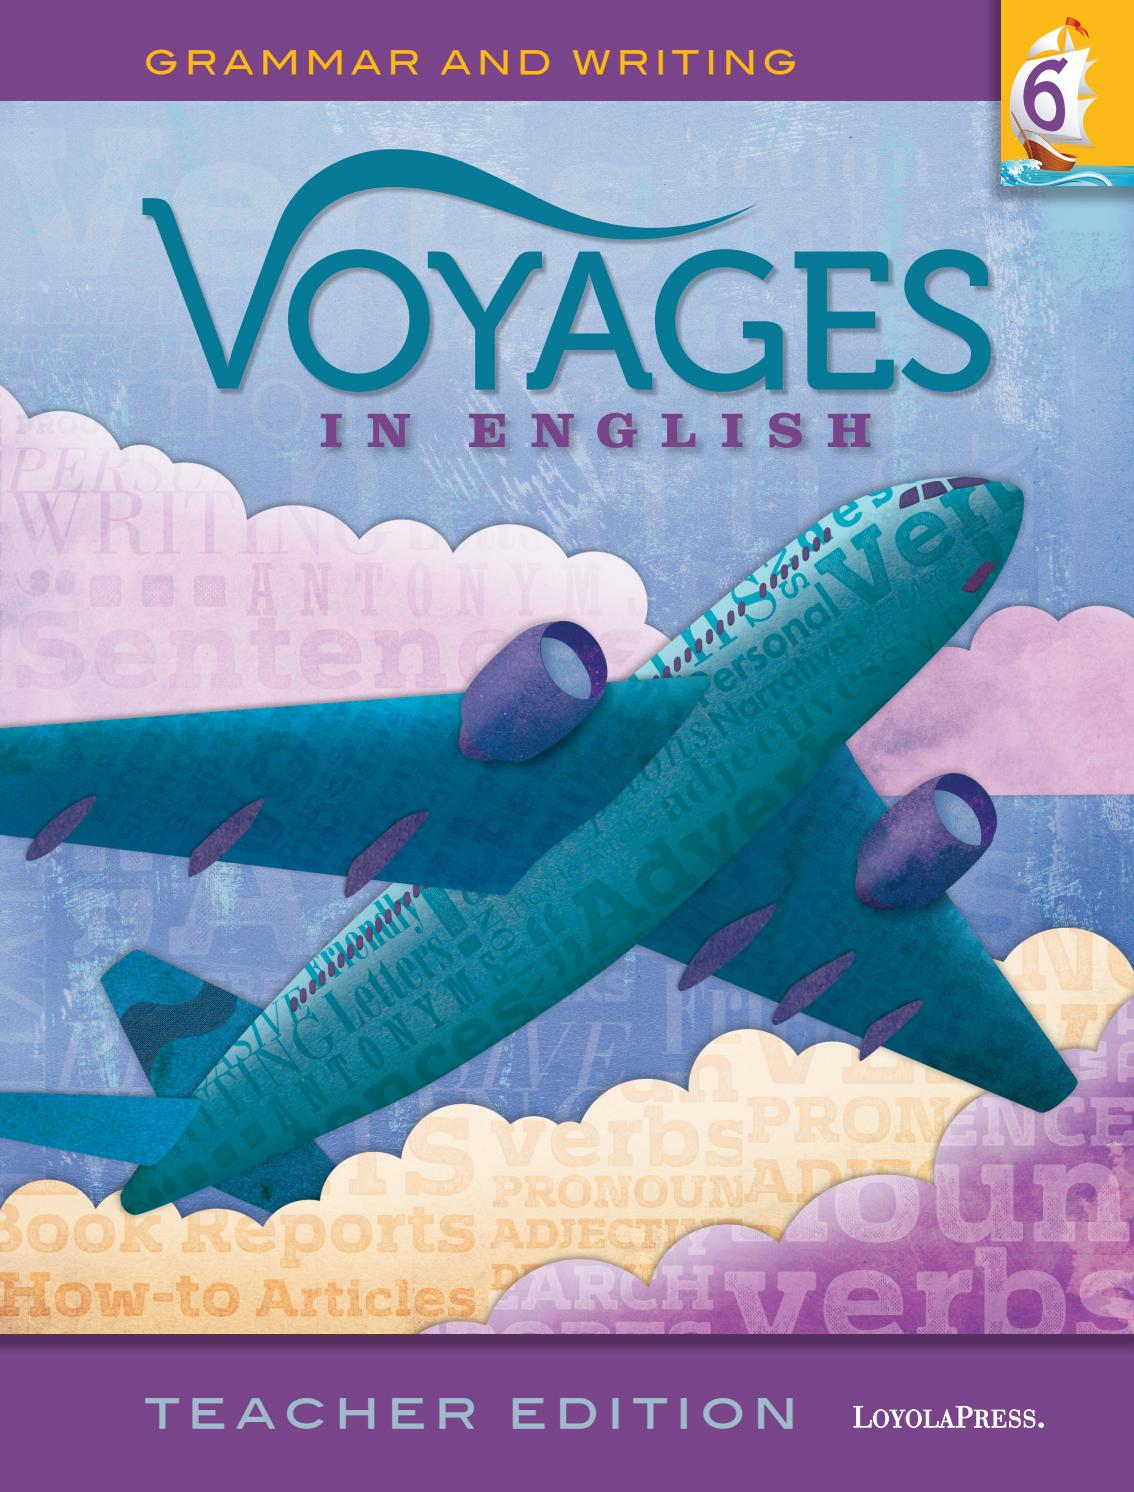 Voyages in English 2018, Teacher Edition, Grade 6 by Loyola Press ...